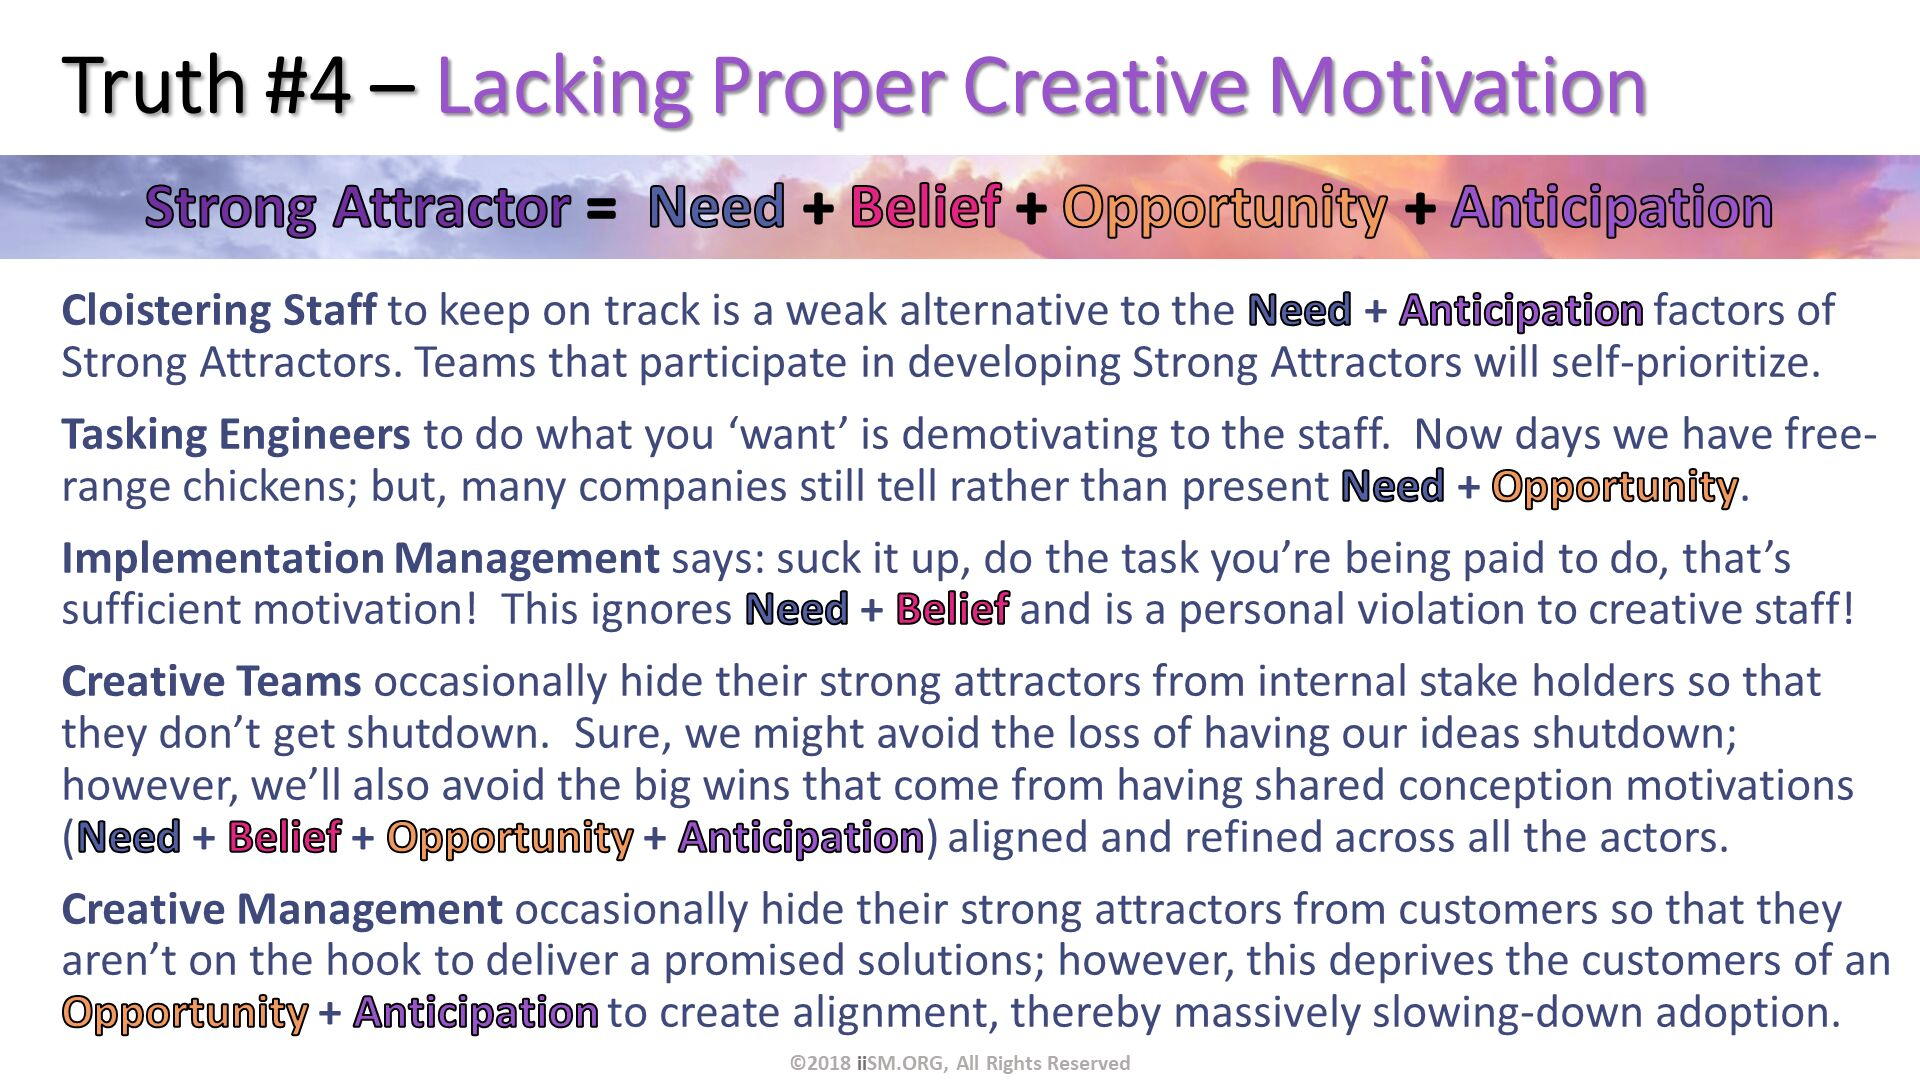 Truth #4 – Lacking Proper Creative Motivation. Cloistering Staff to keep on track is a weak alternative to the Need + Anticipation factors of Strong Attractors. Teams that participate in developing Strong Attractors will self-prioritize. Tasking Engineers to do what you 'want' is demotivating to the staff.  Now days we have free-range chickens; but, many companies still tell rather than present Need + Opportunity. Implementation Management says: suck it up, do the task you're being paid to do, that's sufficient motivation!  This ignores Need + Belief and is a personal violation to creative staff! Creative Teams occasionally hide their strong attractors from internal stake holders so that they don't get shutdown.  Sure, we might avoid the loss of having our ideas shutdown; however, we'll also avoid the big wins that come from having shared conception motivations (Need + Belief + Opportunity + Anticipation) aligned and refined across all the actors.   Creative Management occasionally hide their strong attractors from customers so that they aren't on the hook to deliver a promised solutions; however, this deprives the customers of an Opportunity + Anticipation to create alignment, thereby massively slowing-down adoption. . ©2018 iiSM.ORG, All Rights Reserved.